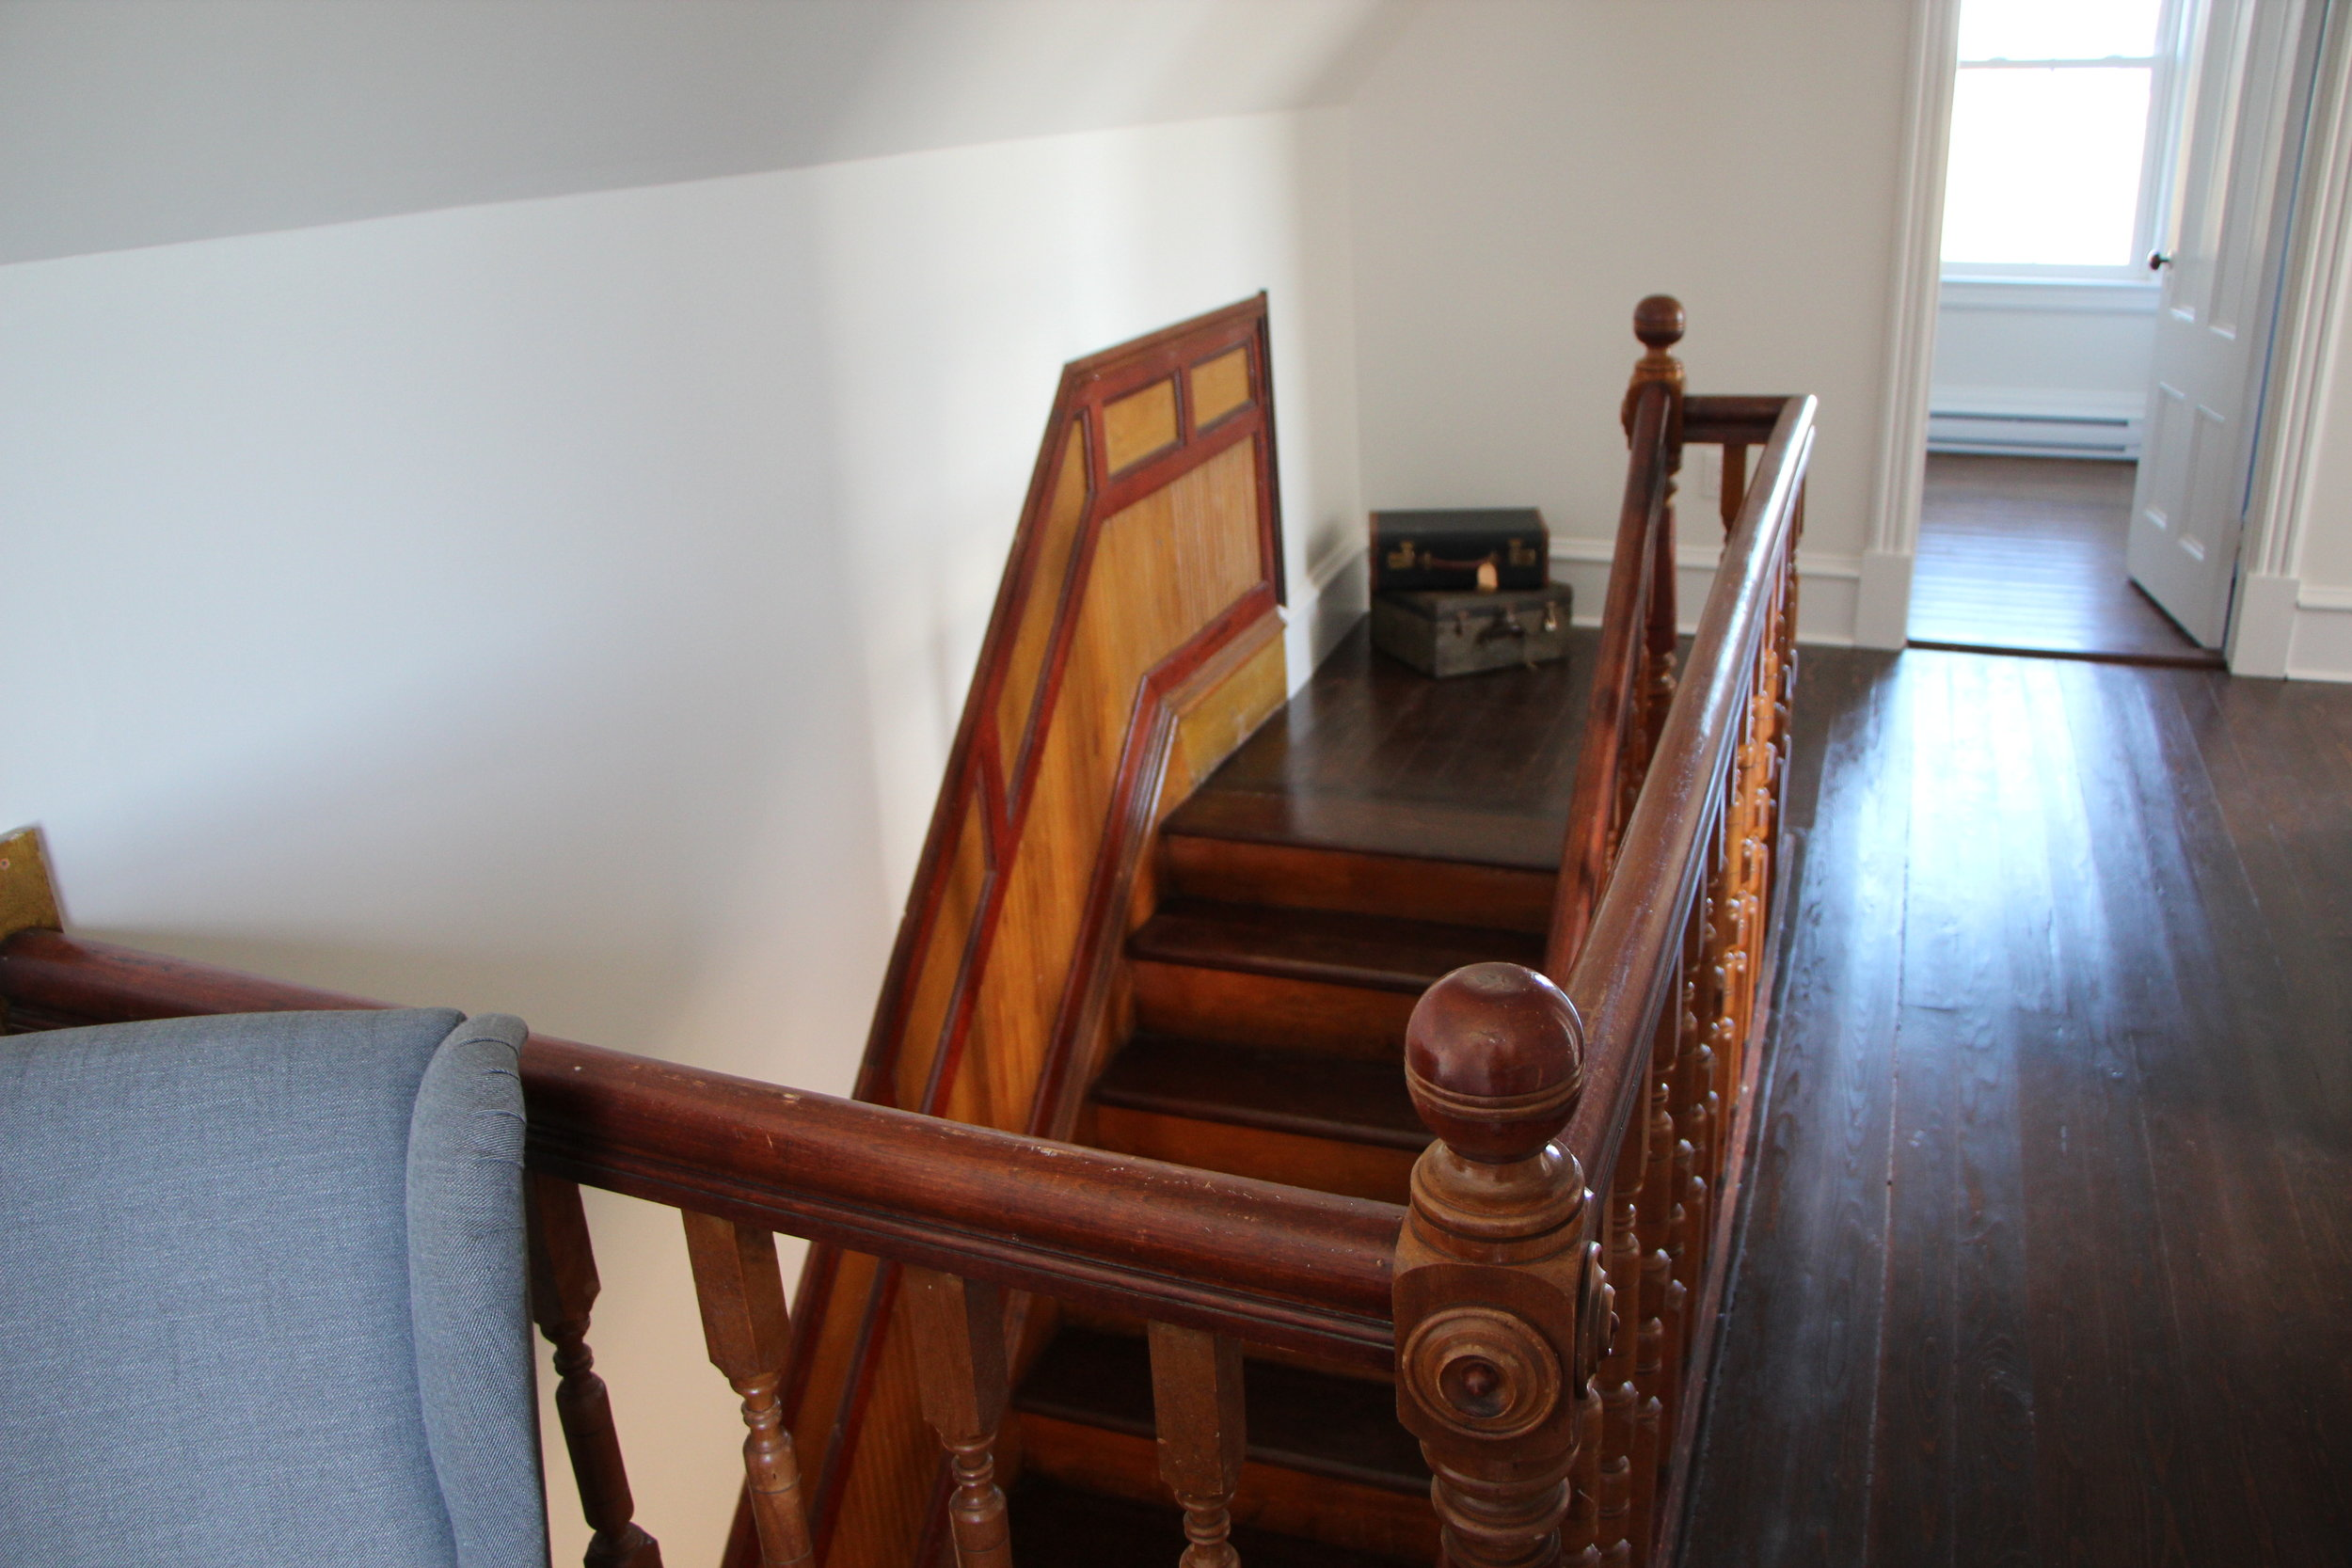 Don't you just love those original stairs